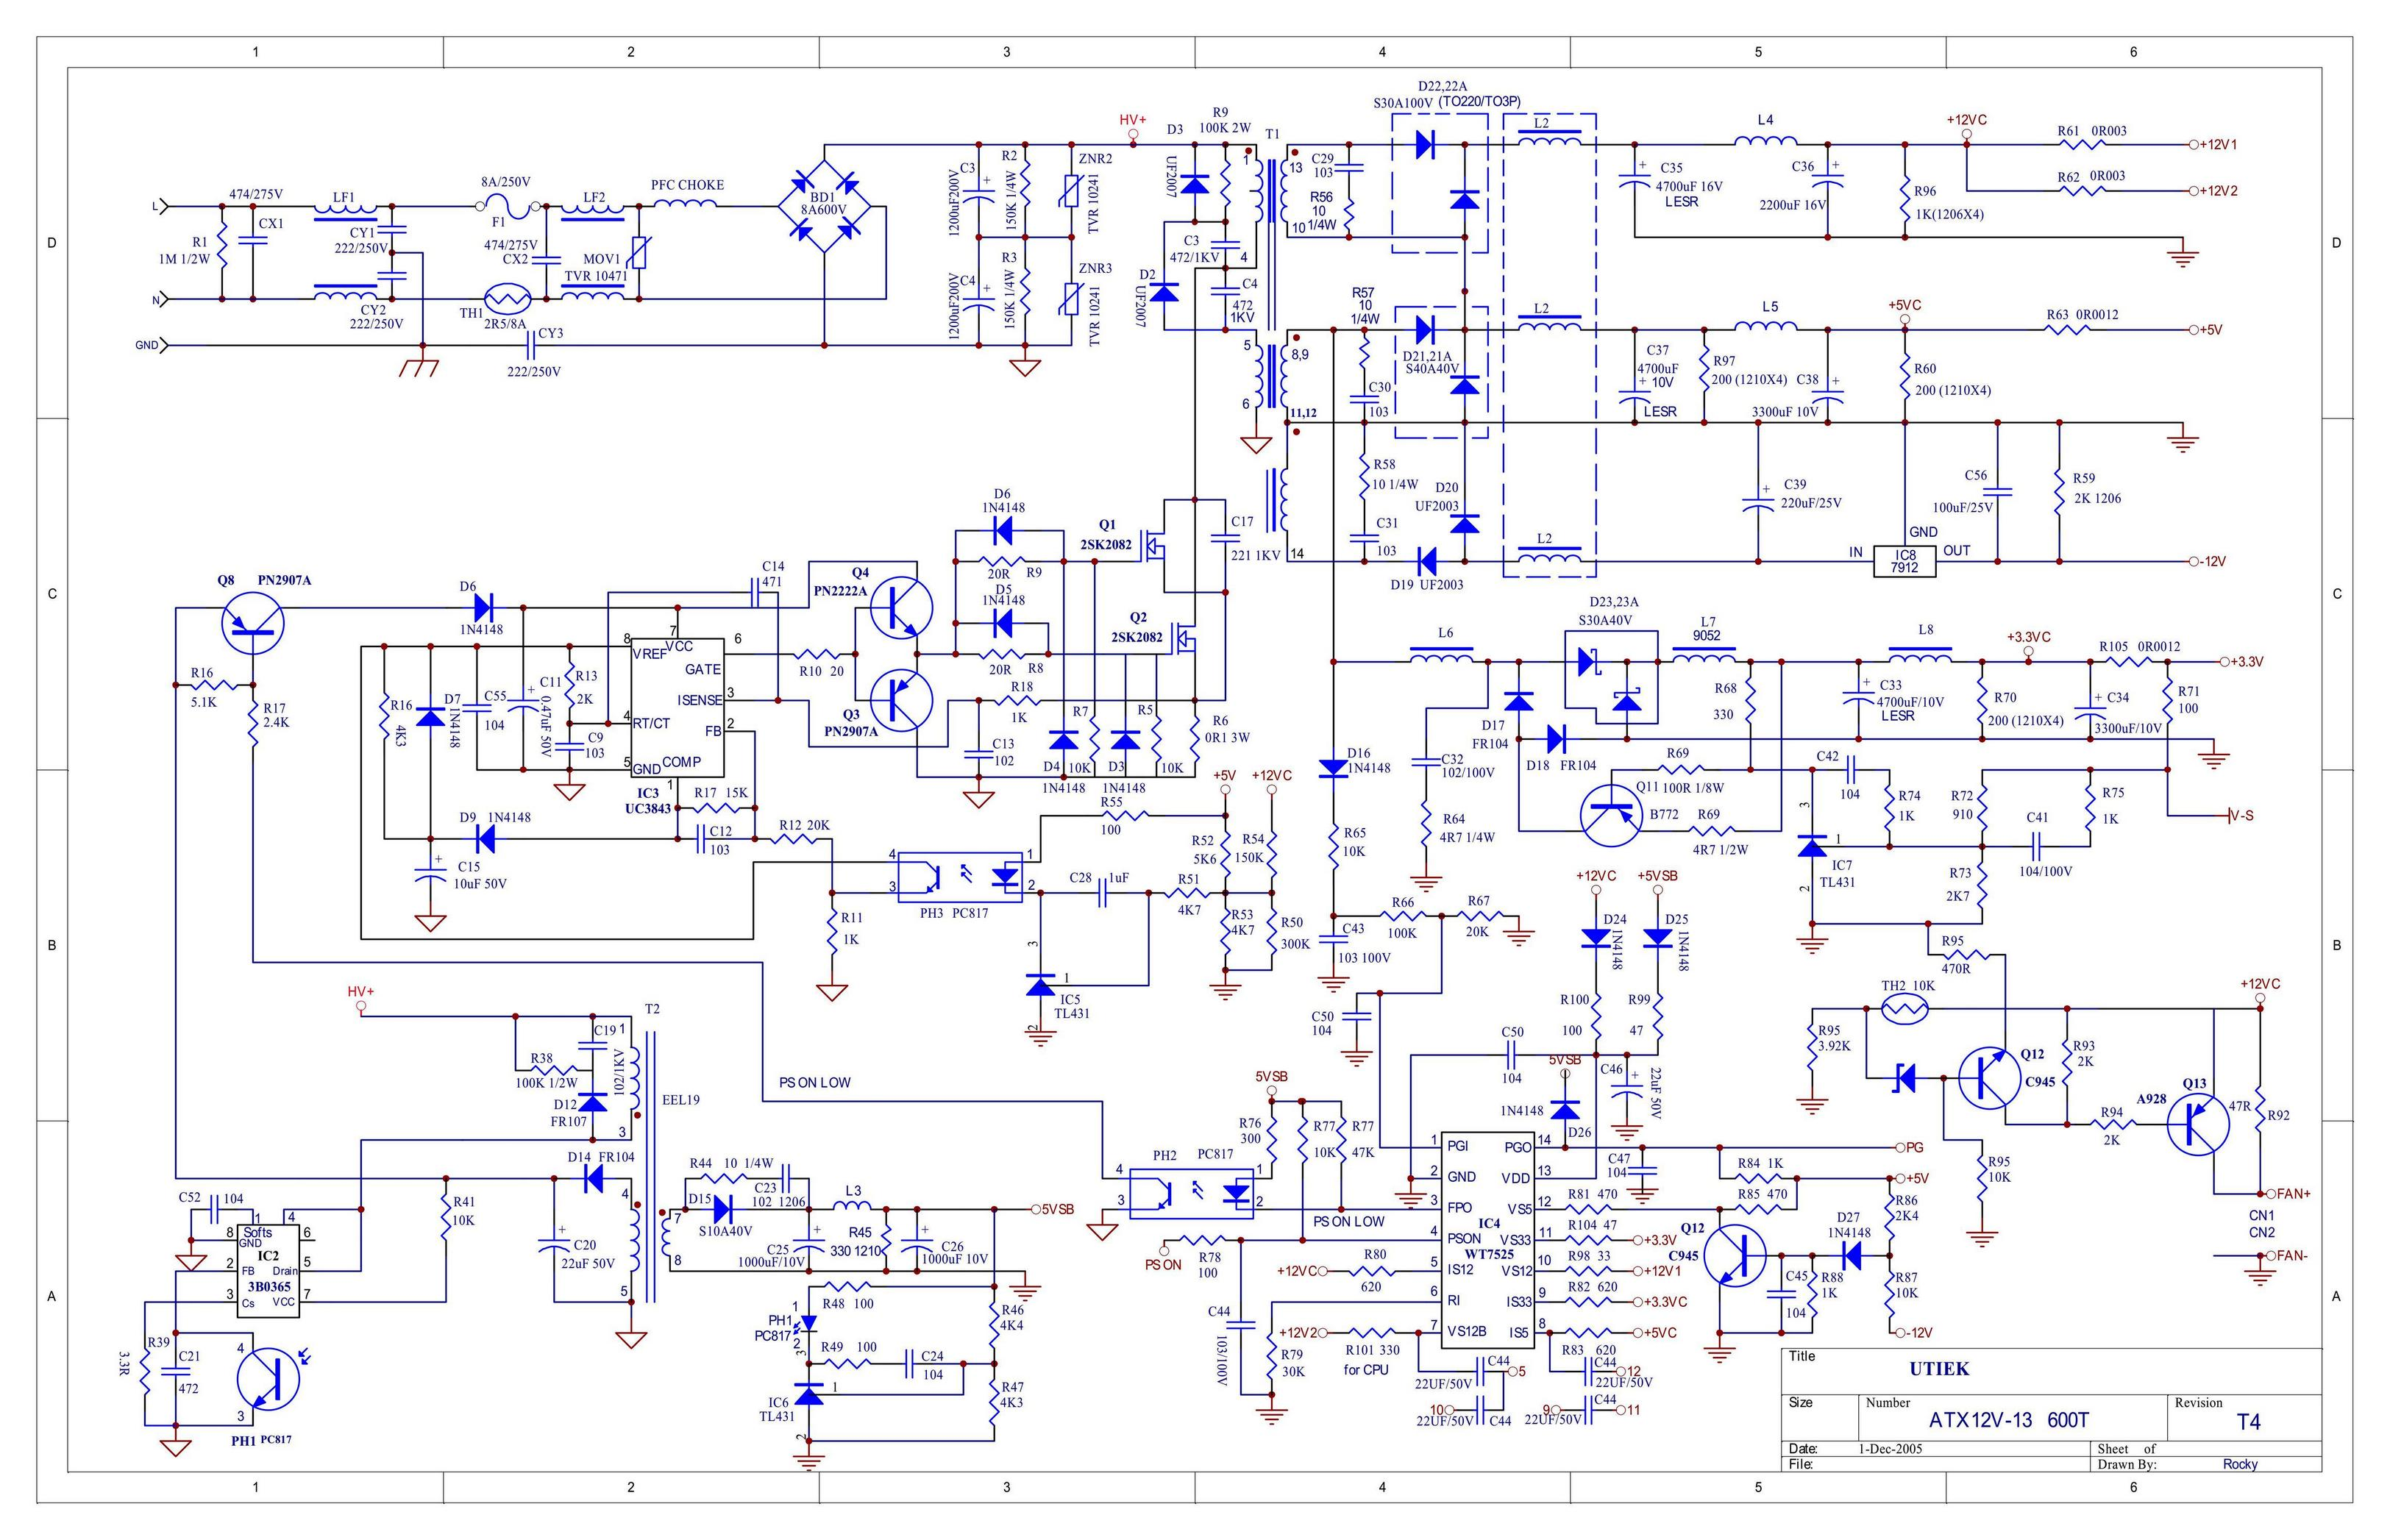 Pics on Schematic Diagram Power Supply.